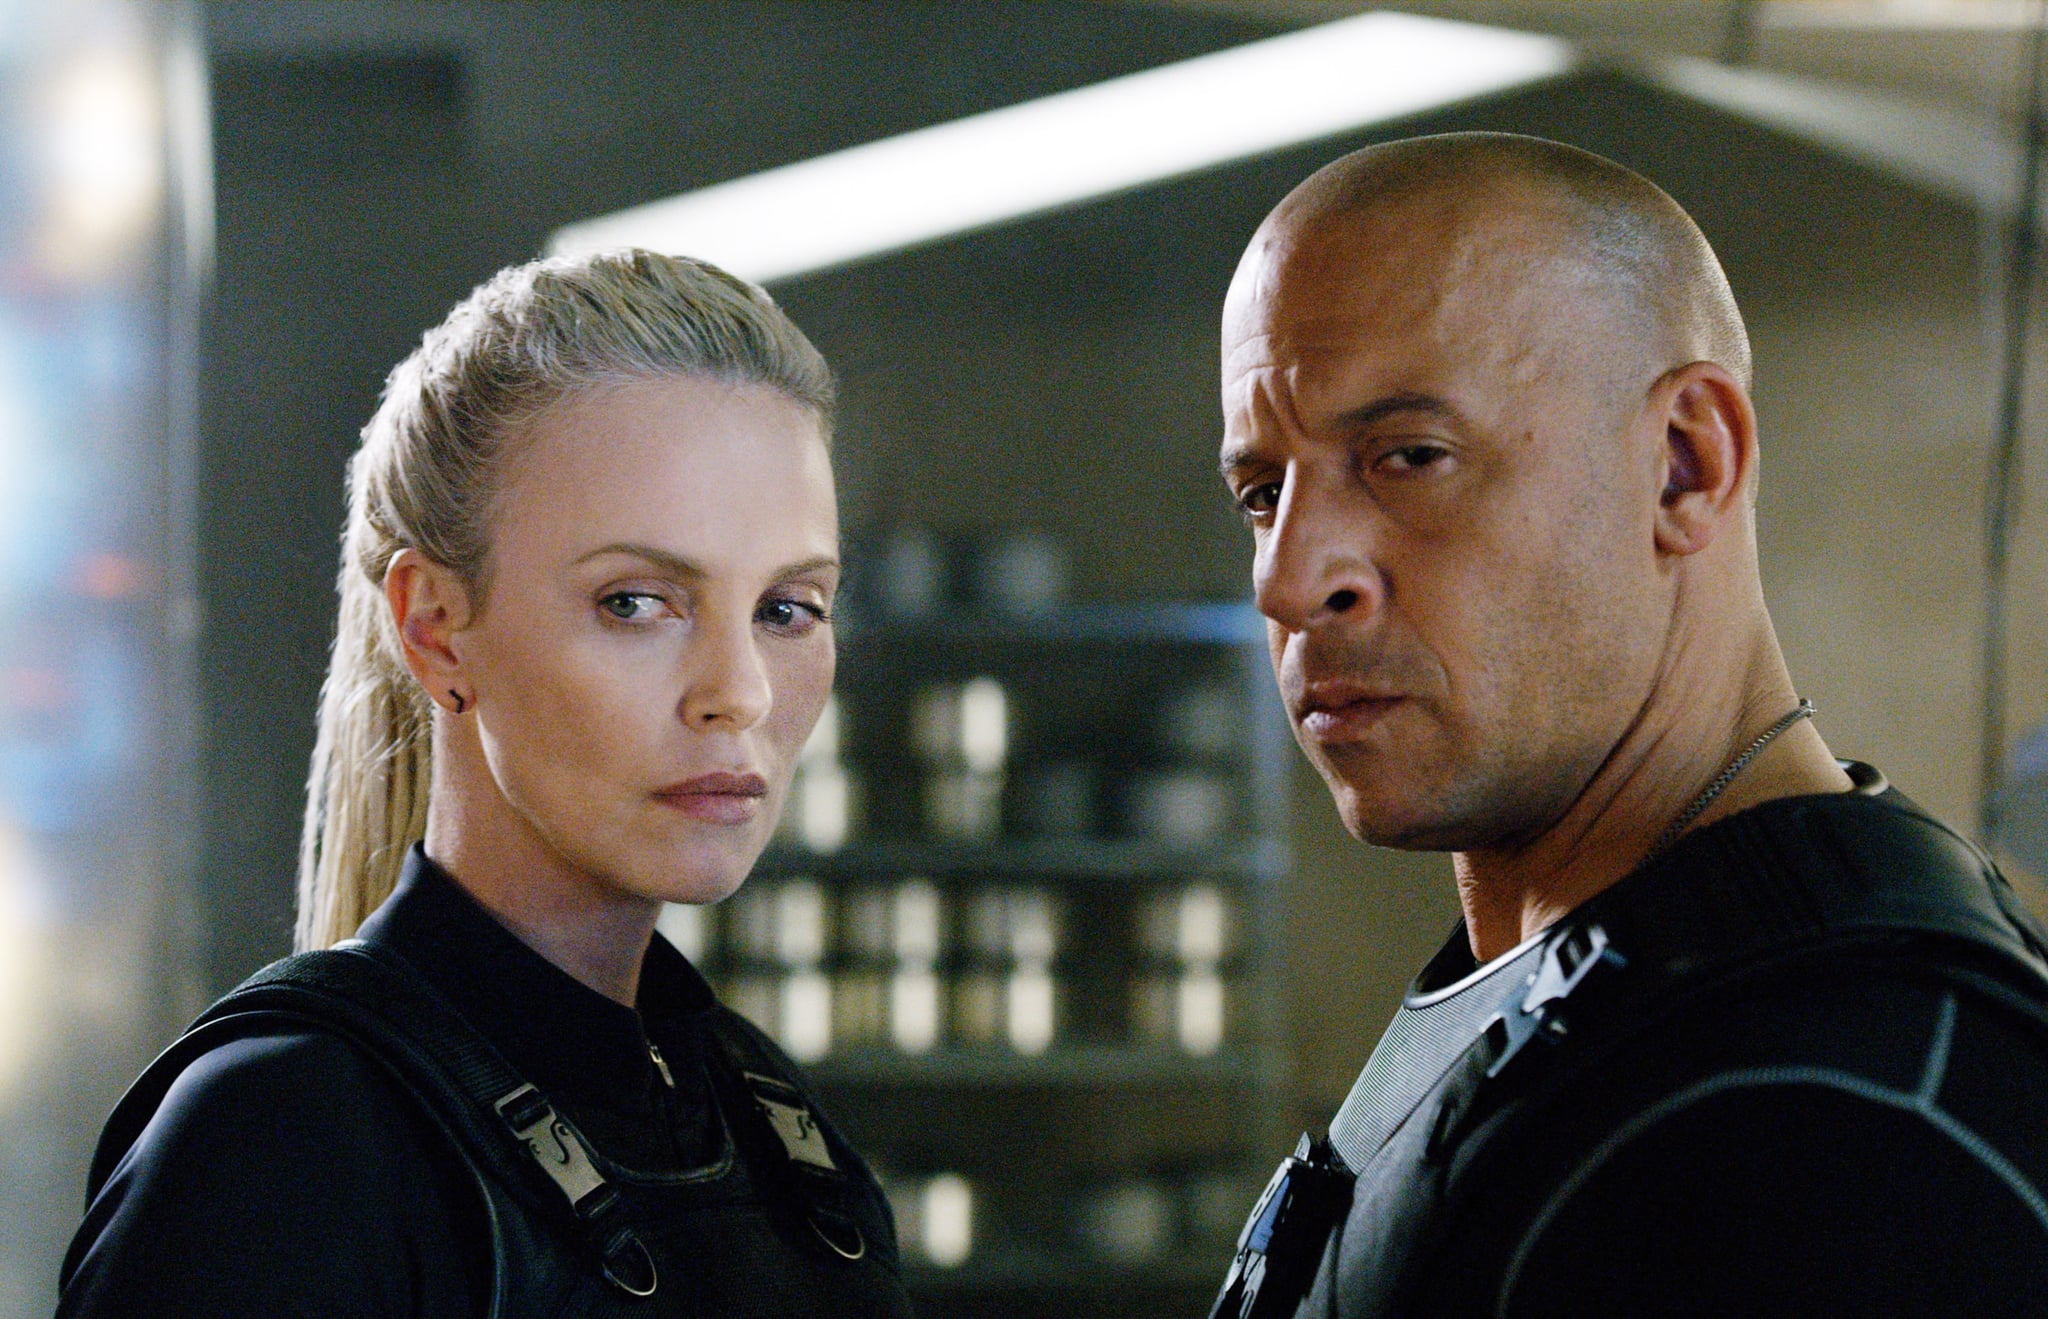 How Does The Fate of the Furious End? | POPSUGAR Entertainment